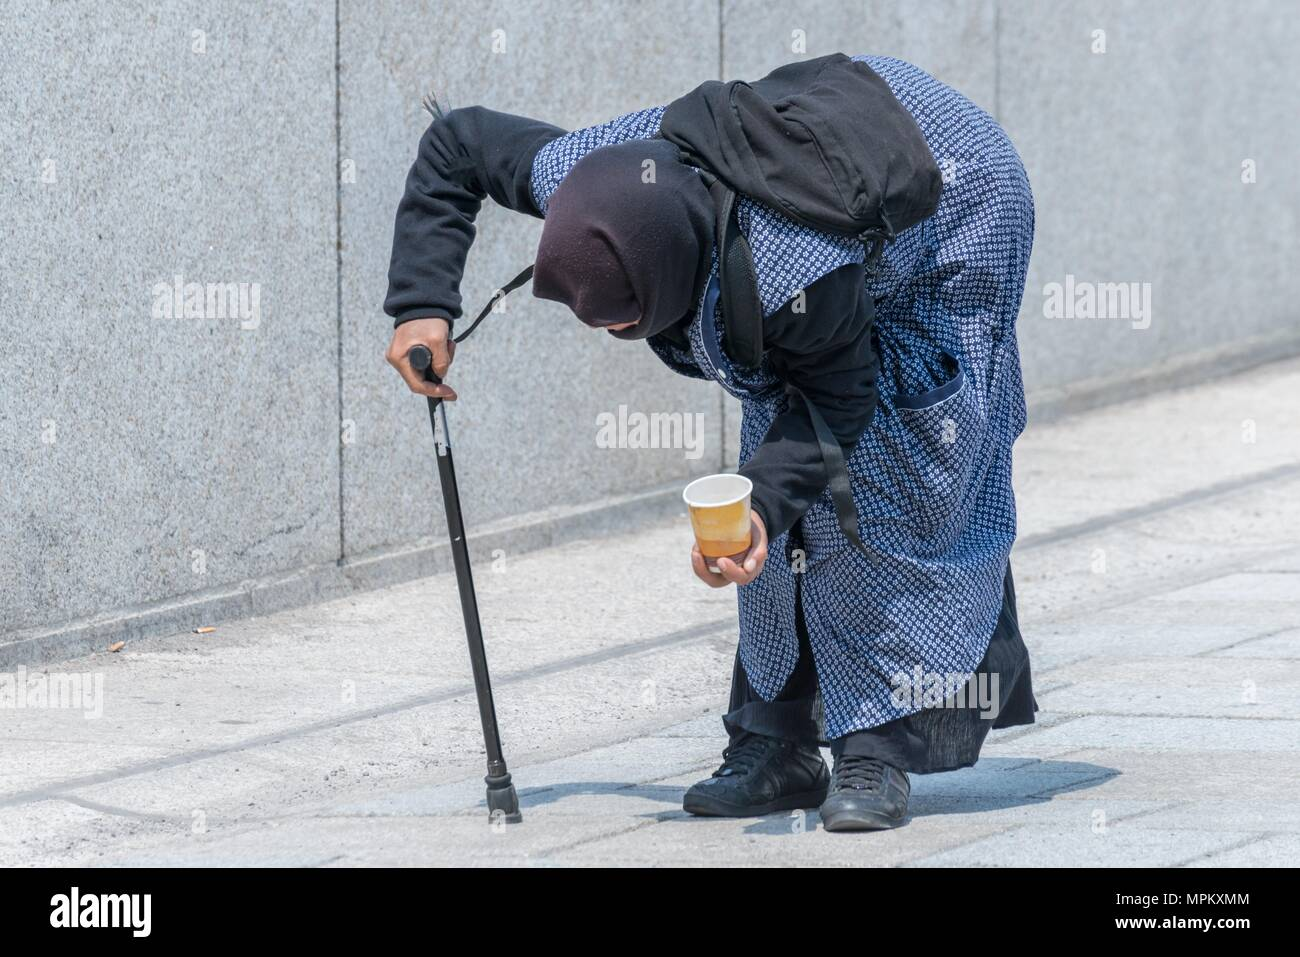 Old beggar woman bent over in a pedestrian zone, Germany - Stock Image